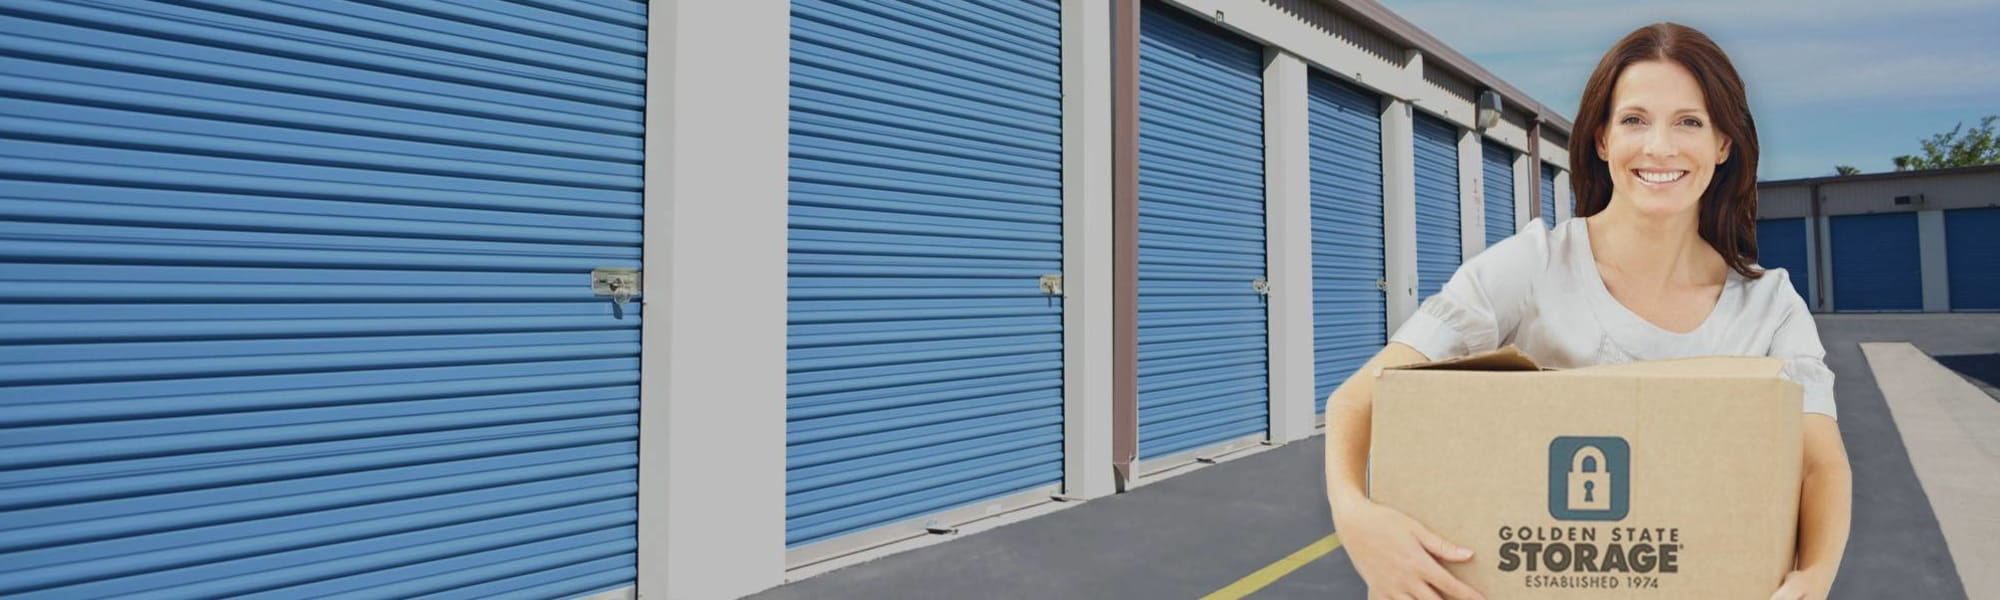 Reviews of Golden State Storage - Roscoe in North Hills, California